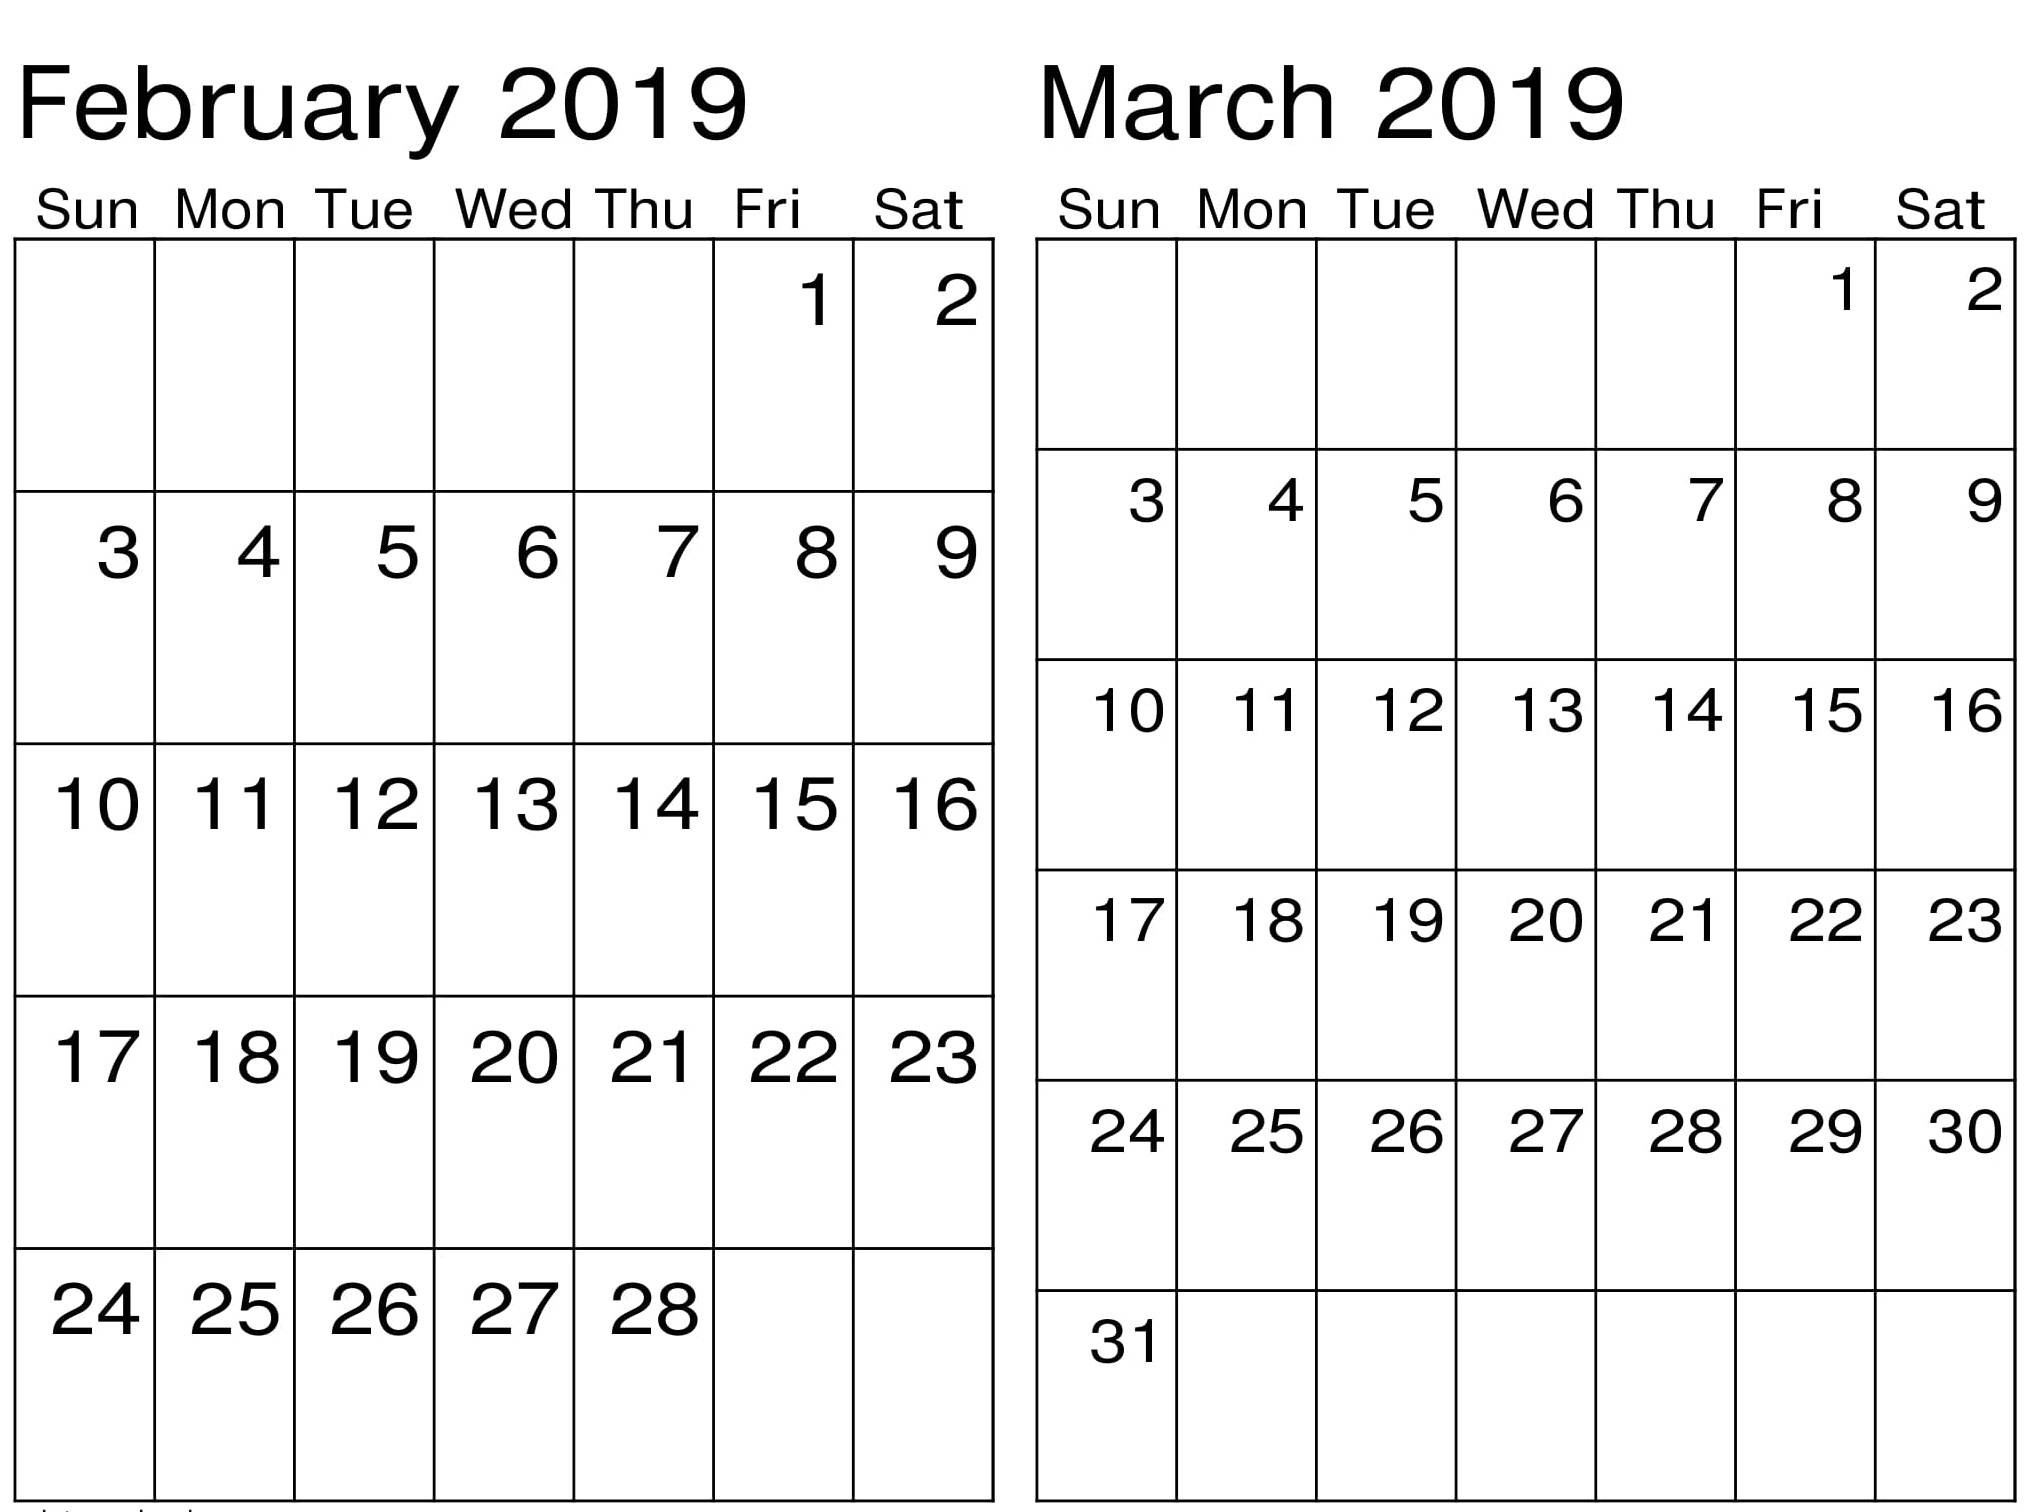 March 2019 Calendar Landscape Actual Tue February and March 2019 Calendar Of March 2019 Calendar Landscape Recientes 2018 Hubble Space Telescope Advent Calendar the atlantic